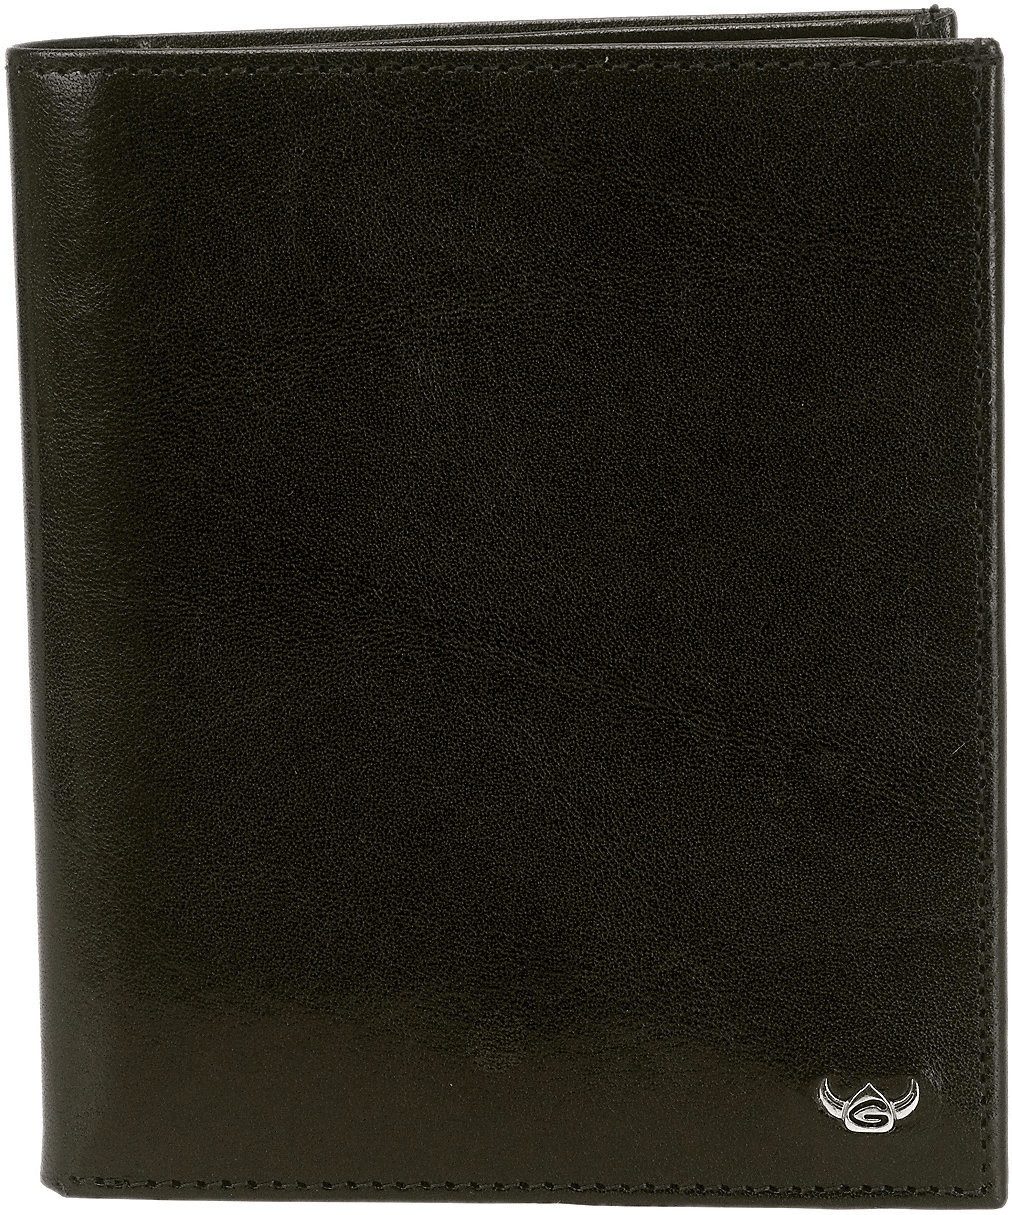 Golden Head Colorado RFID Protect black (1230-61)